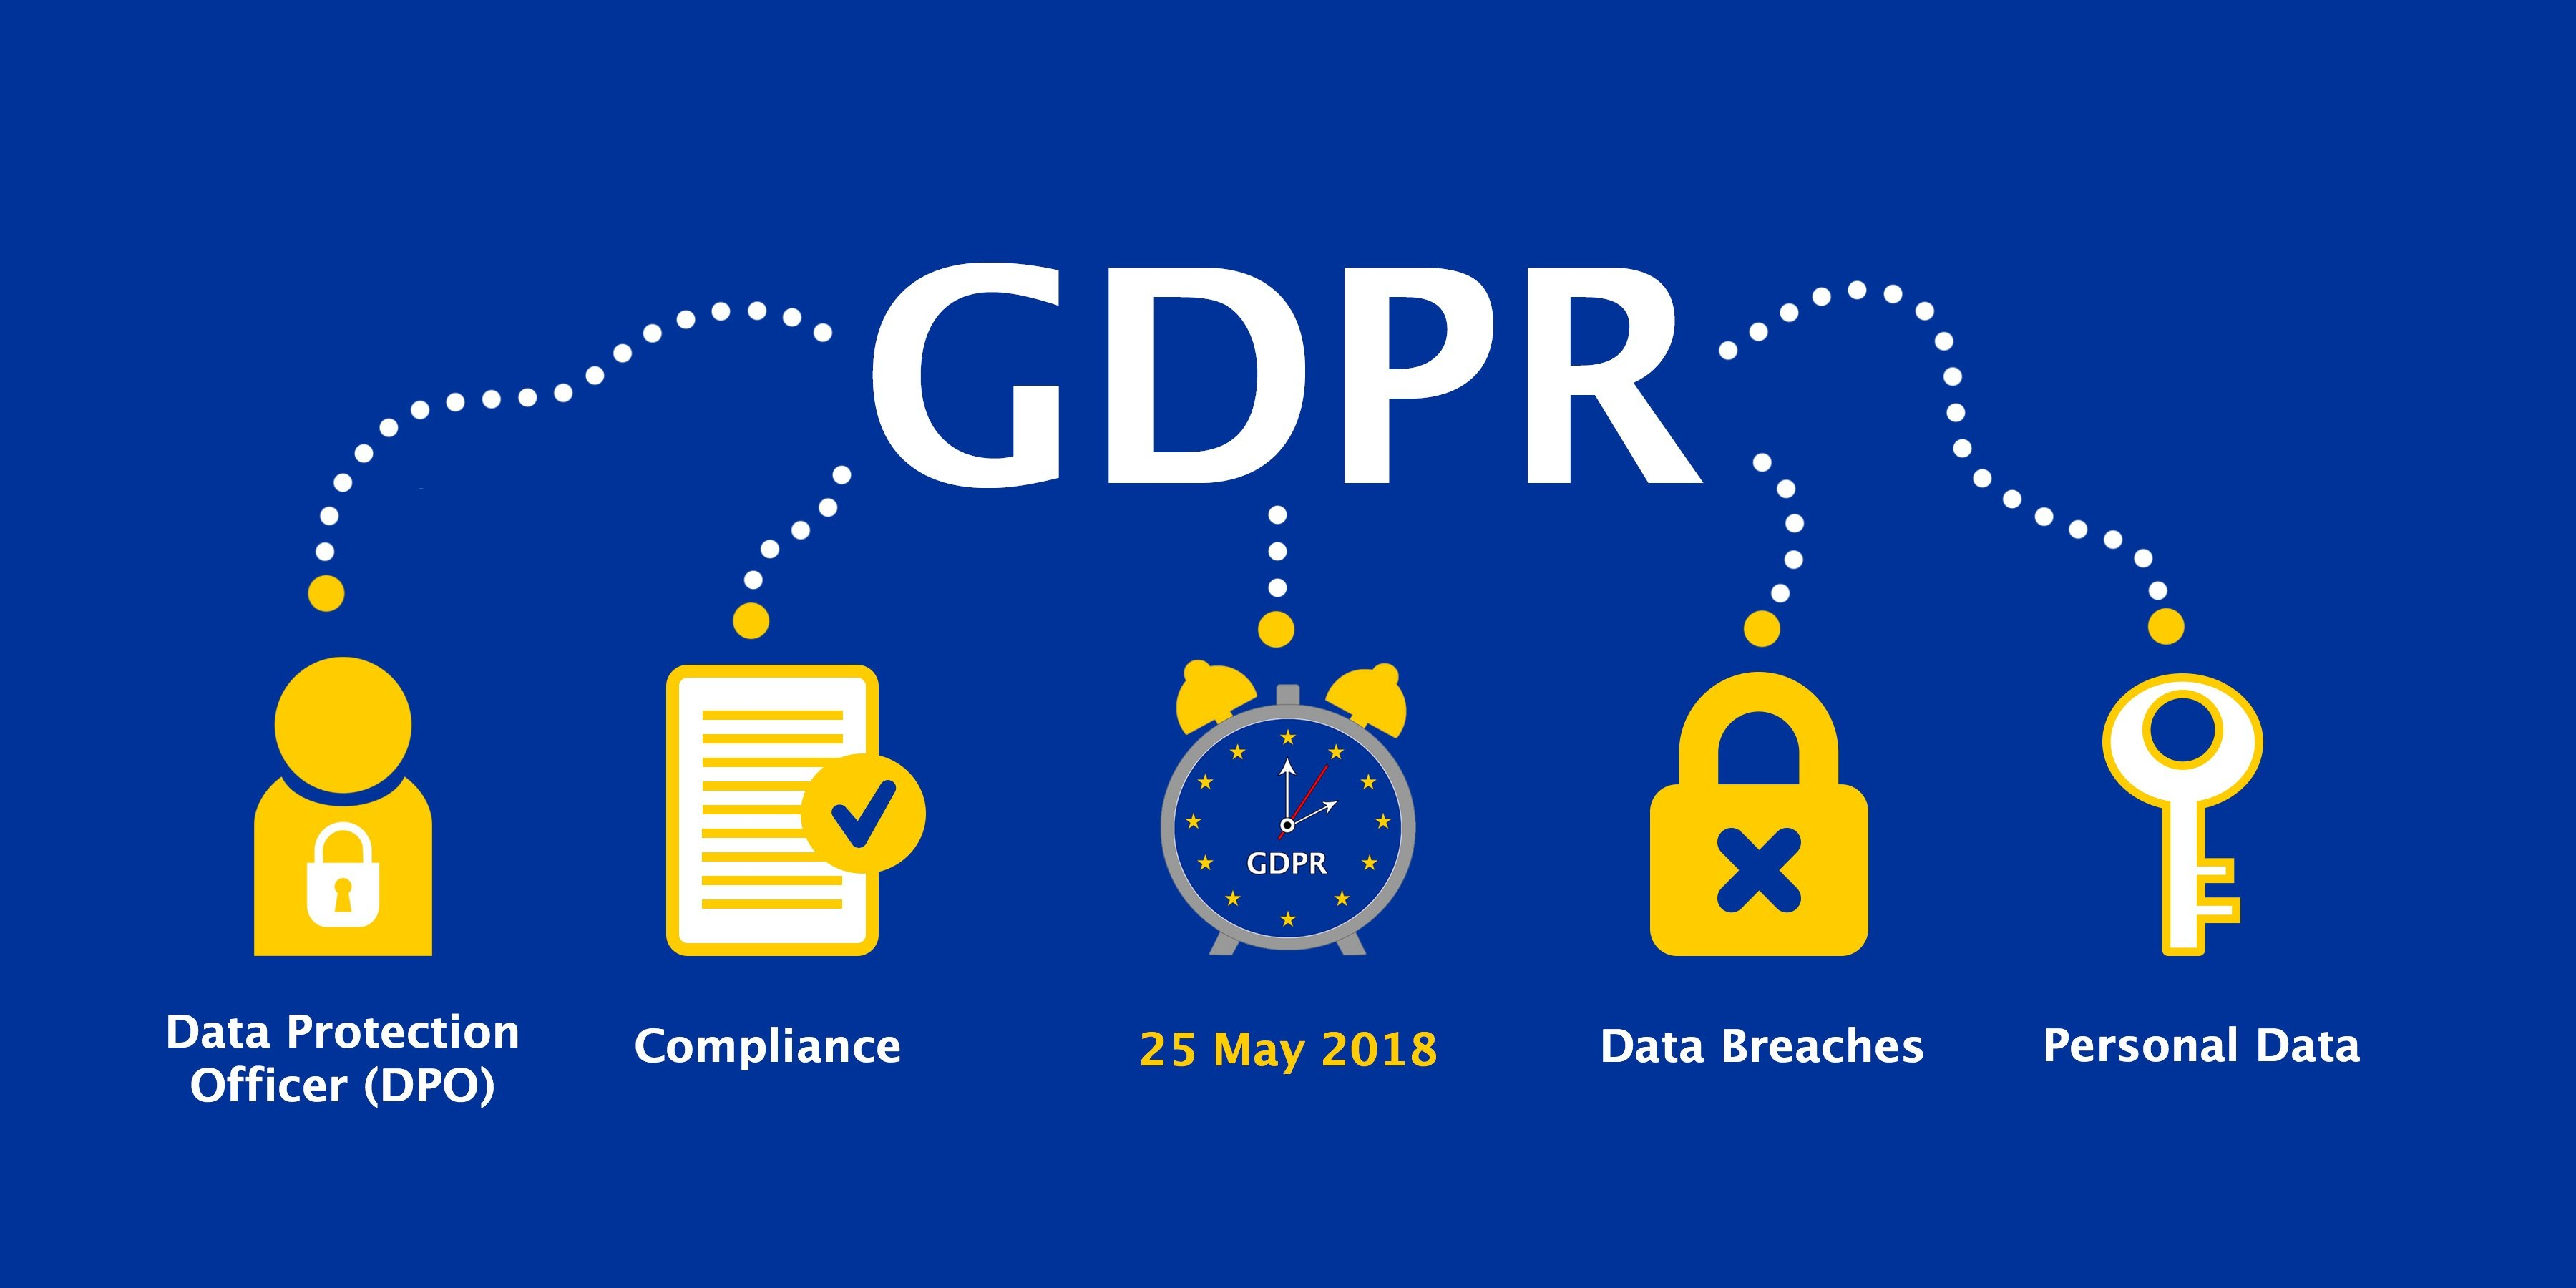 General Data Protection Regulation (GDPR): Key Facts You Need to Know